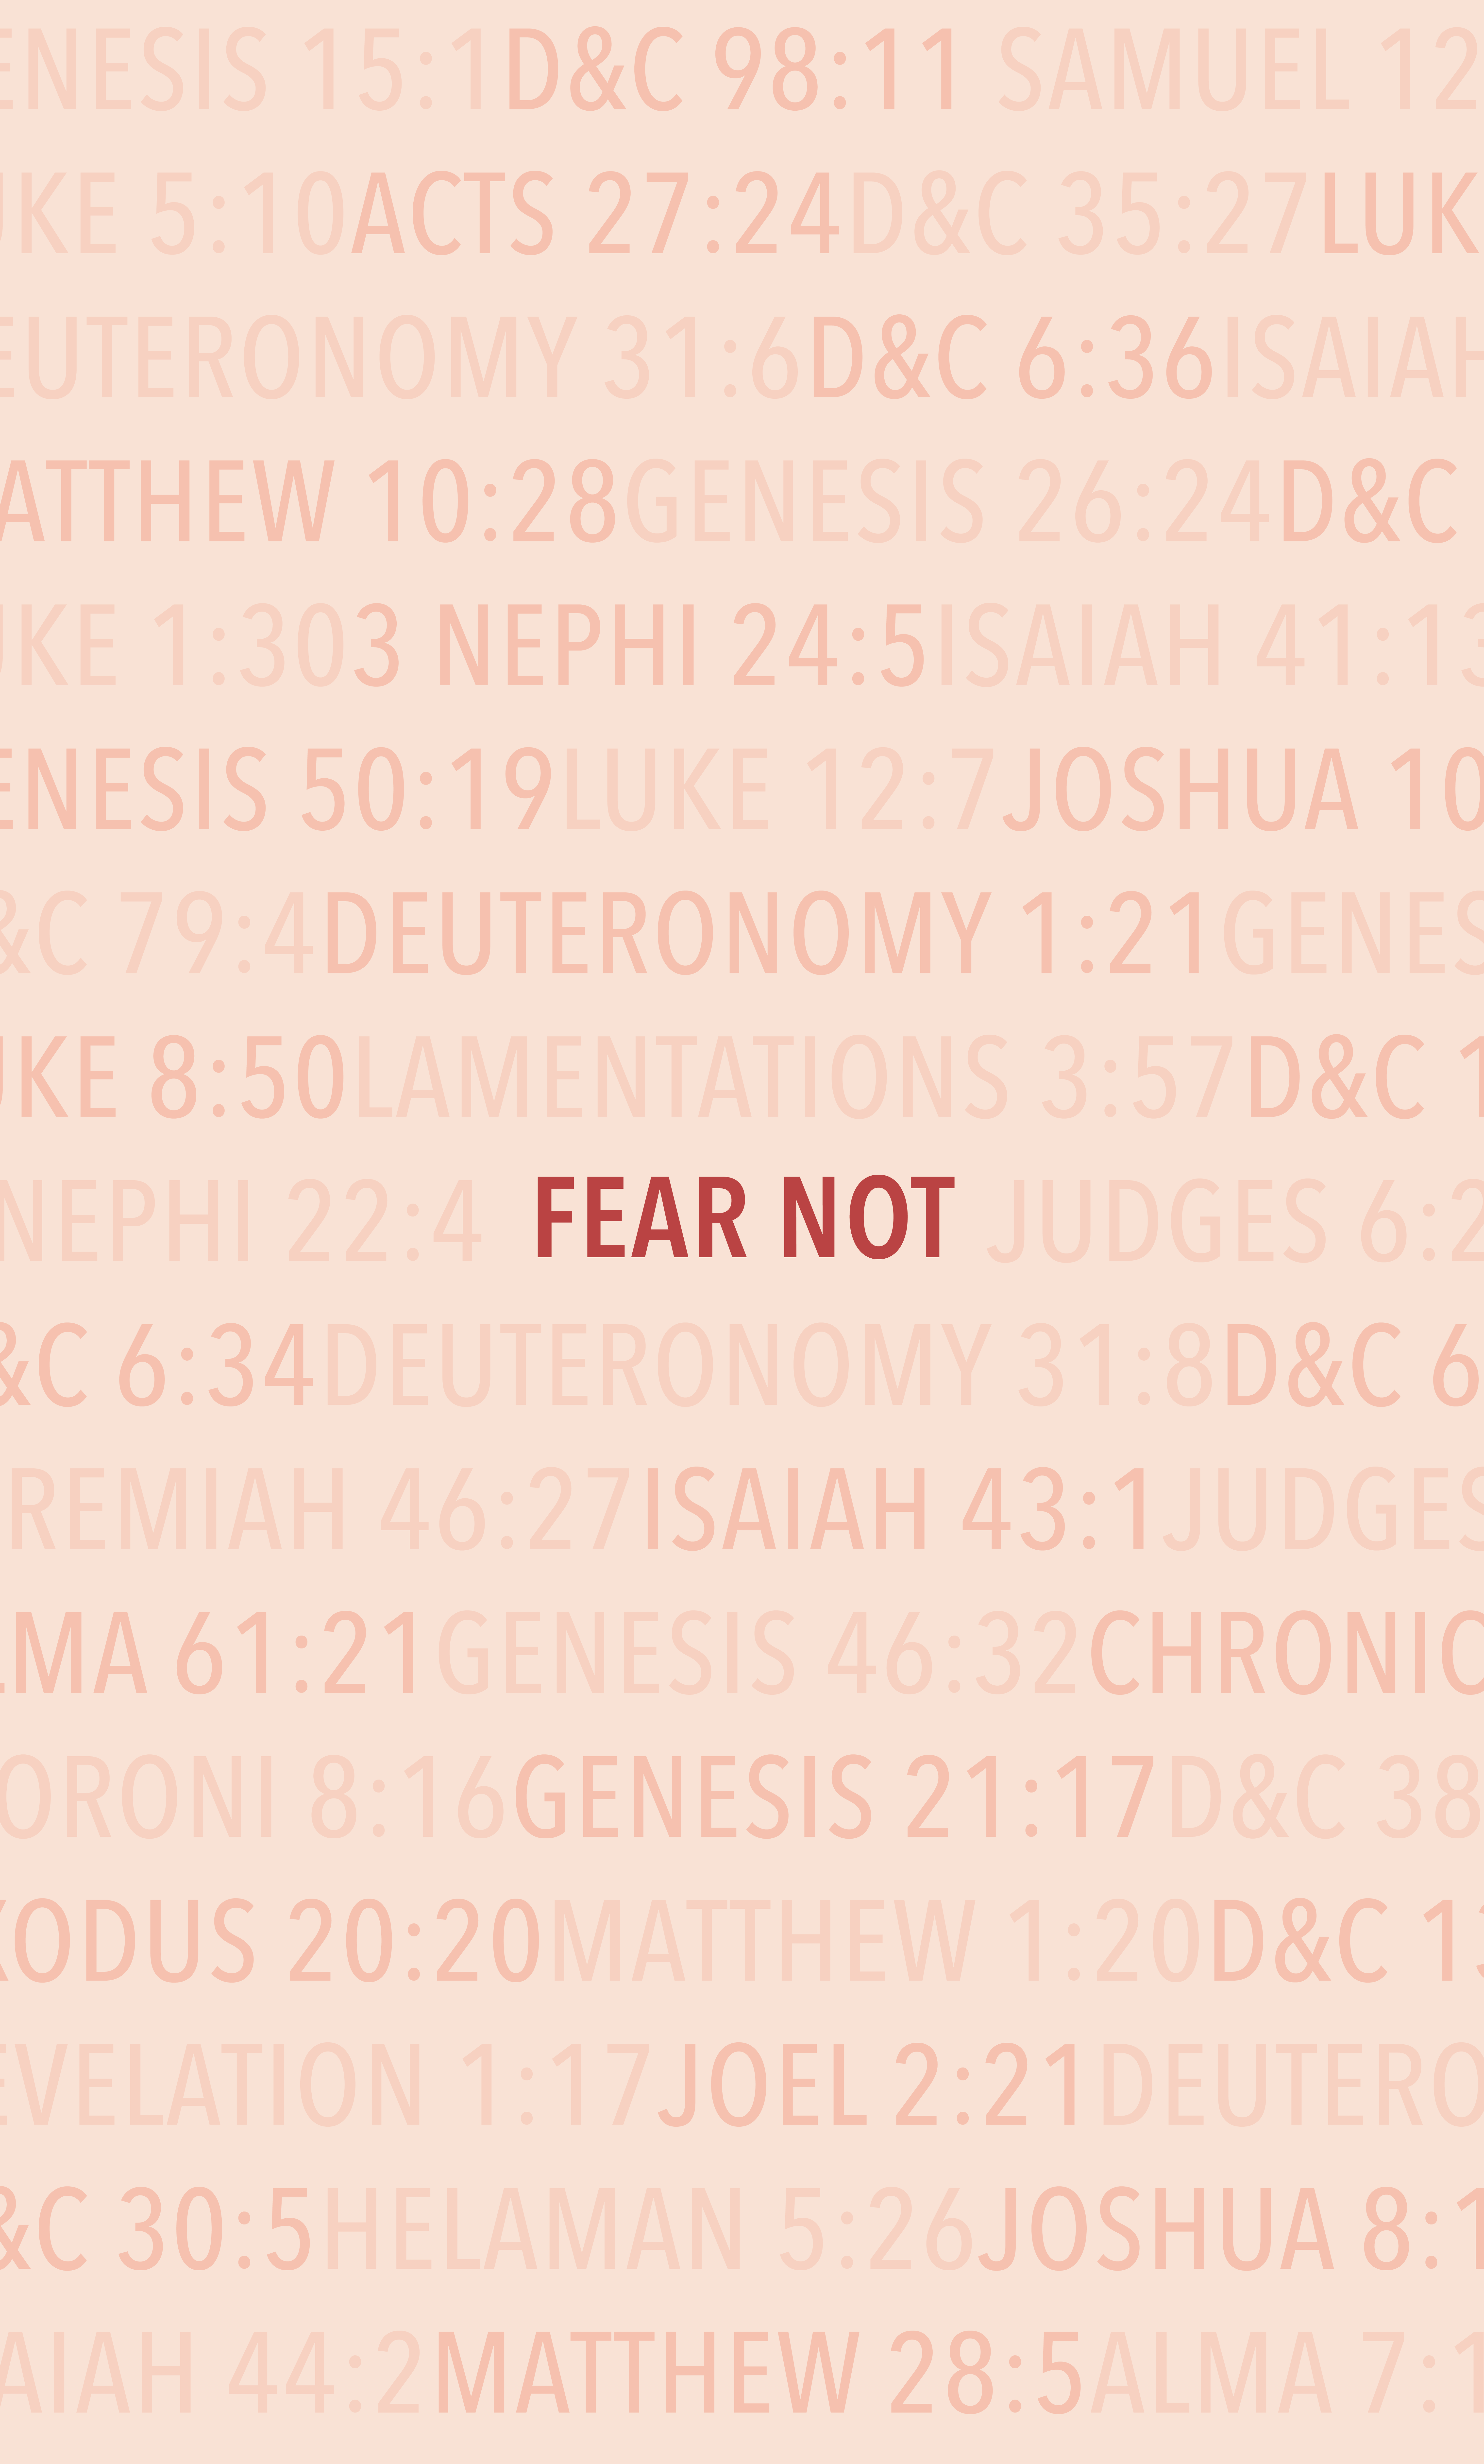 Fear thou not; for I am with thee: be not dismayed; for I am thy God ...